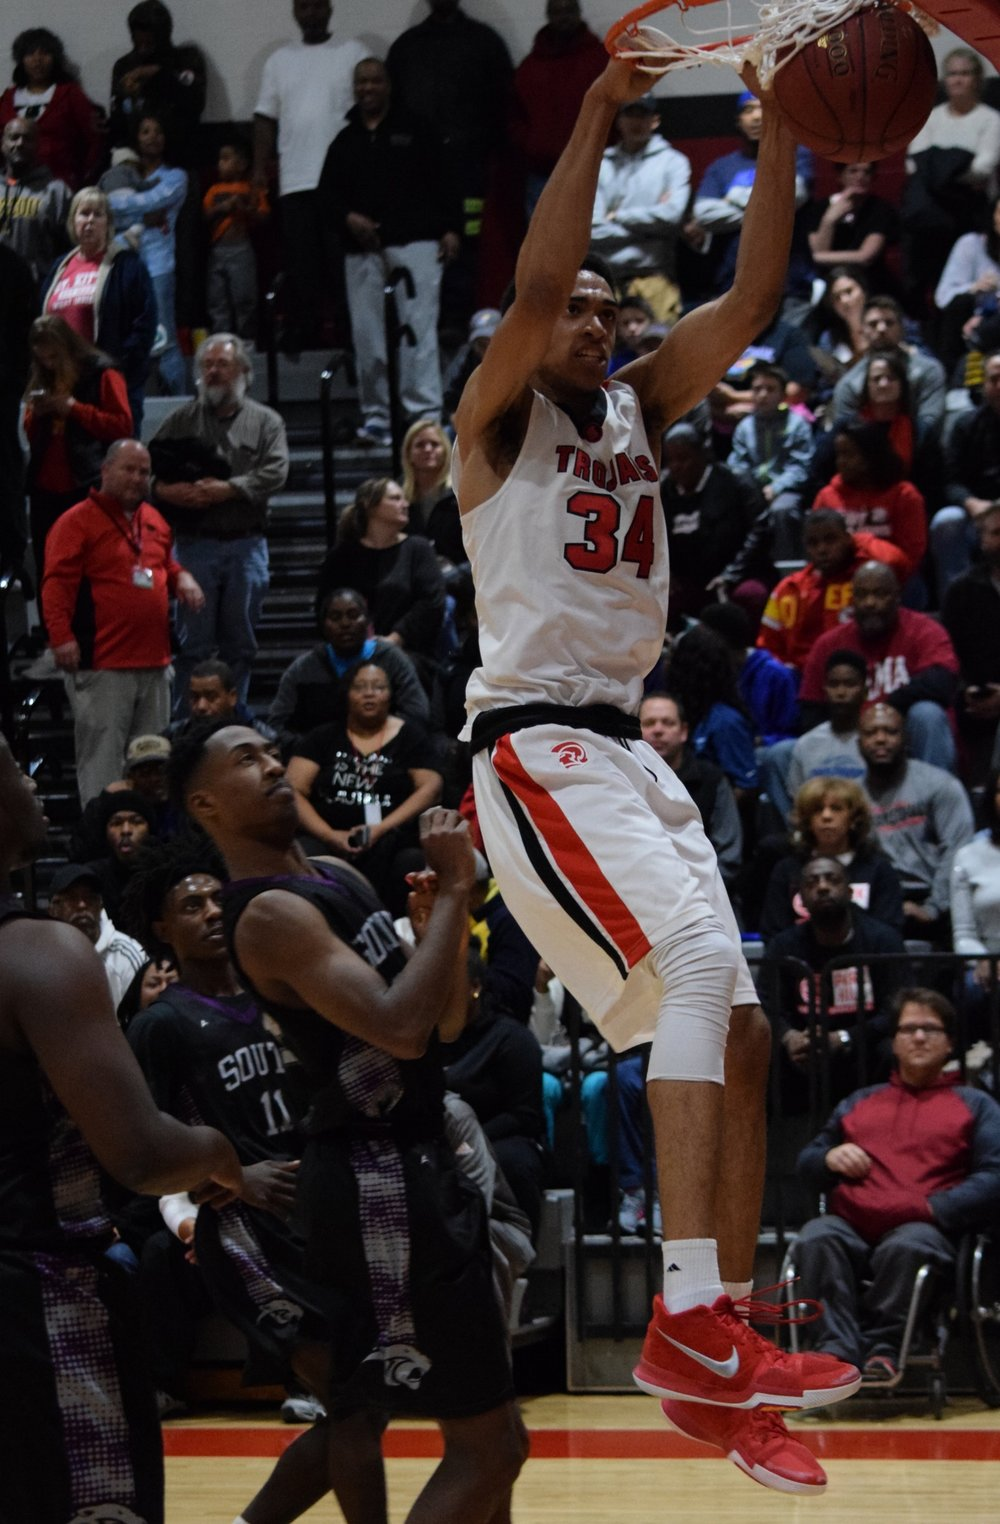 BRYCE MERENESS/Special to The Citizen  Park Hill senior forward Cecil Lee (34) finishes a dunk against Park Hill South on Wednesday, Dec. 20 at Park Hill High School in Kansas City, Mo.